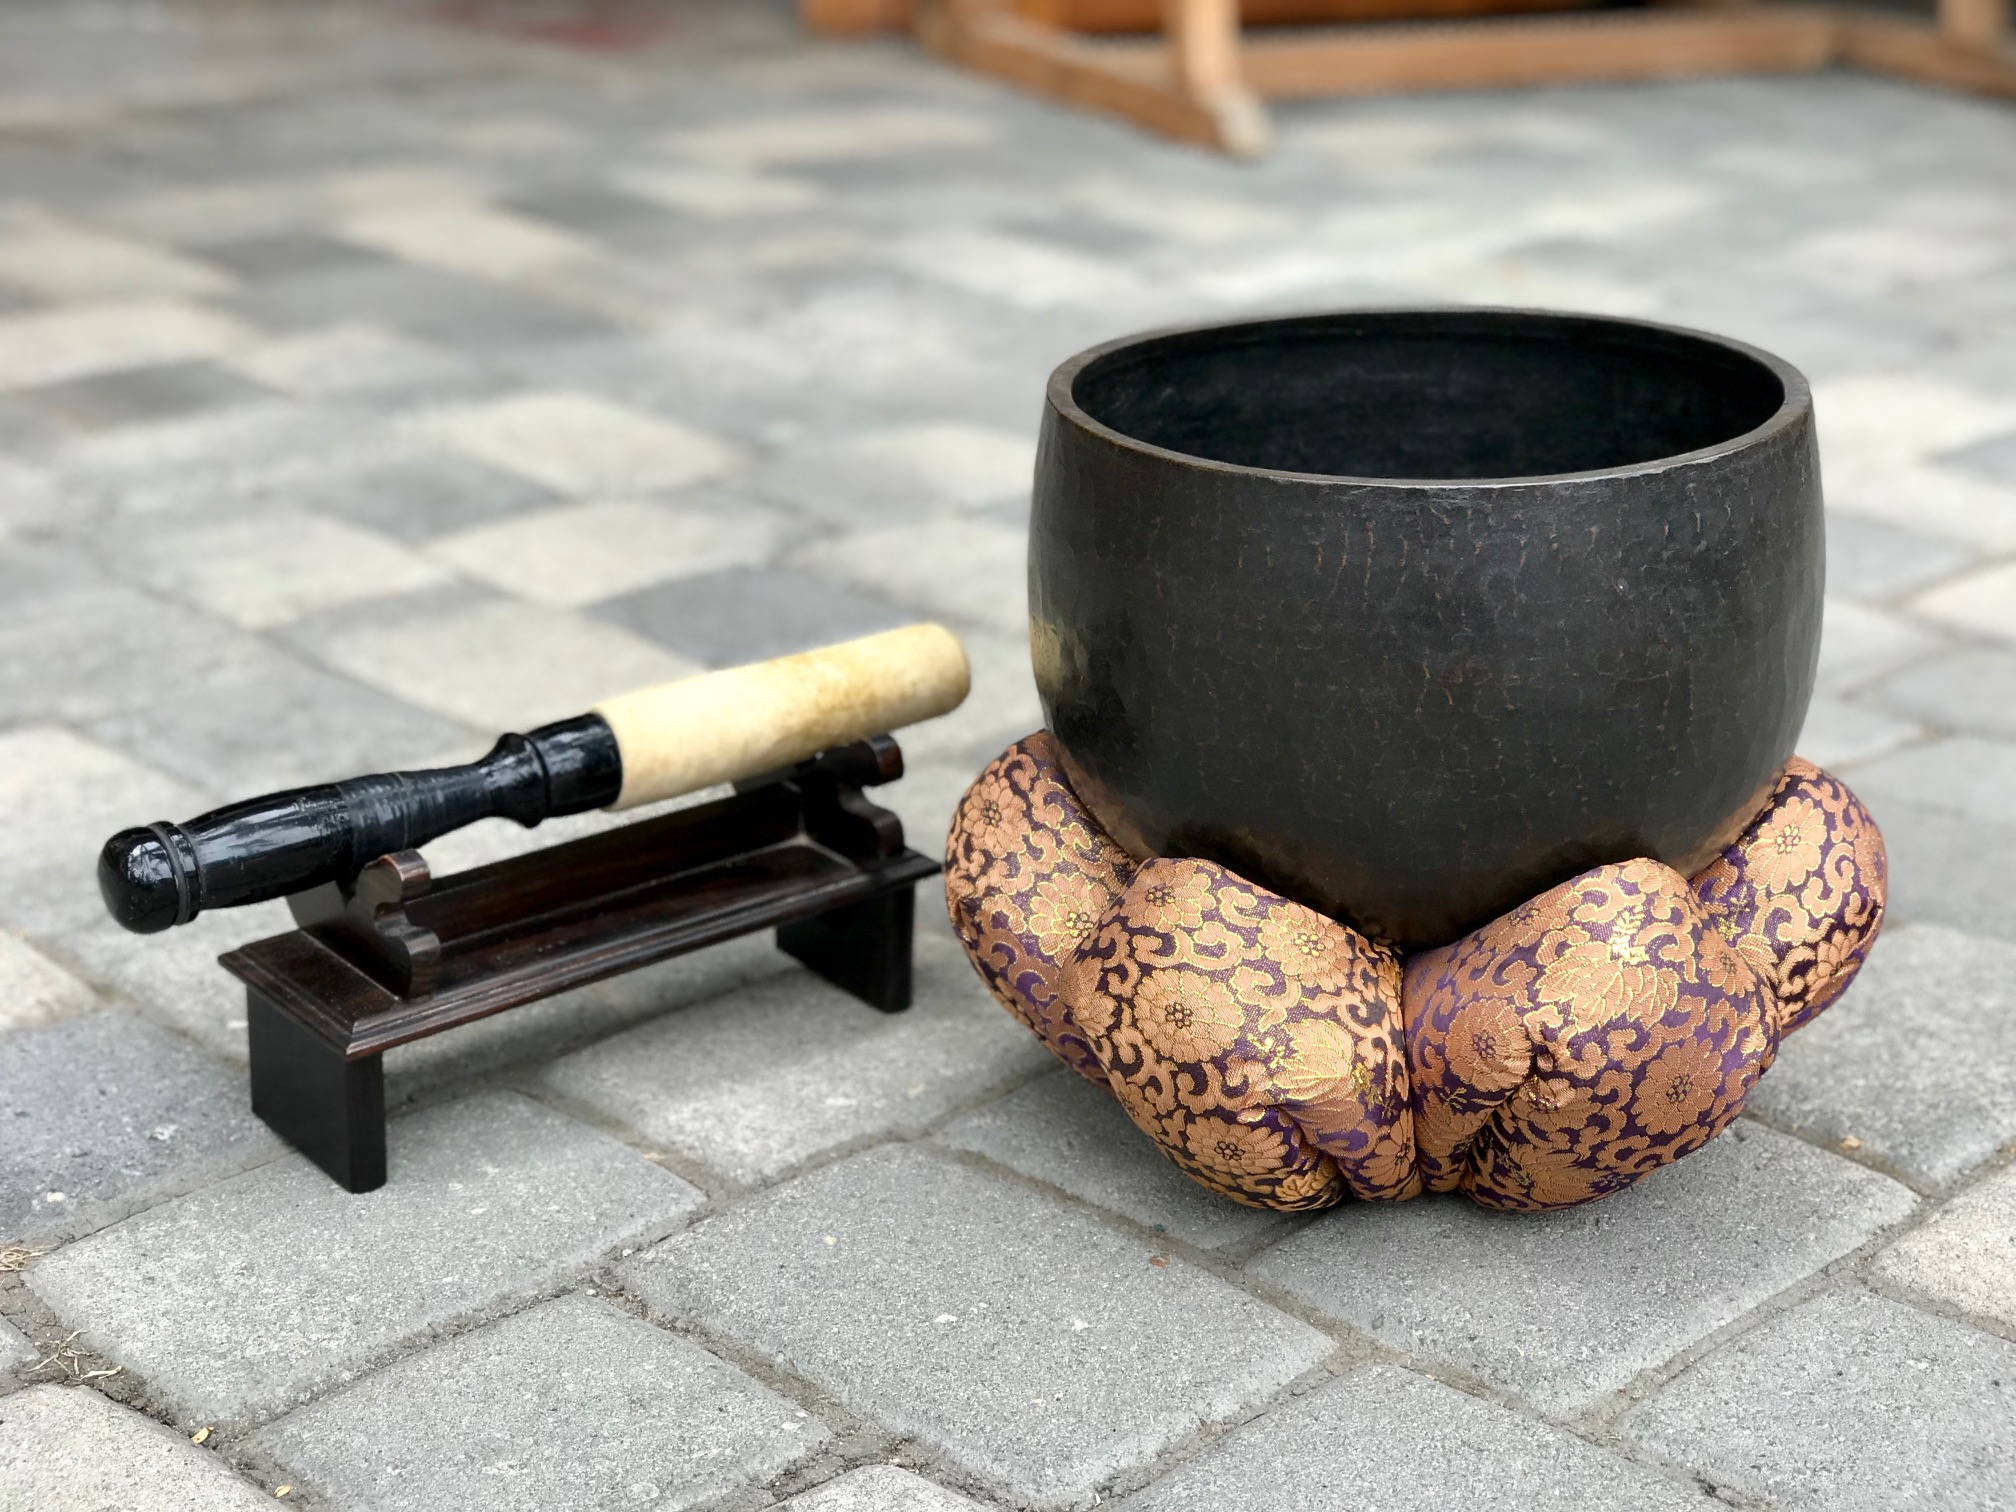 """Buddhist Temple Altar, Hammered Bronze, Singing Bowl and Cushion Stand, with Wooden and hyde Striker and Striker Stand Japan, 7"""" x 10"""" (10 1/2"""" x 12 1/2"""" with cuchion, striker - 13 1/2"""" x 2"""" (5 1/2"""" tall with striker stand) $1250., thedavidalancollection.com , solana beach, ca,"""